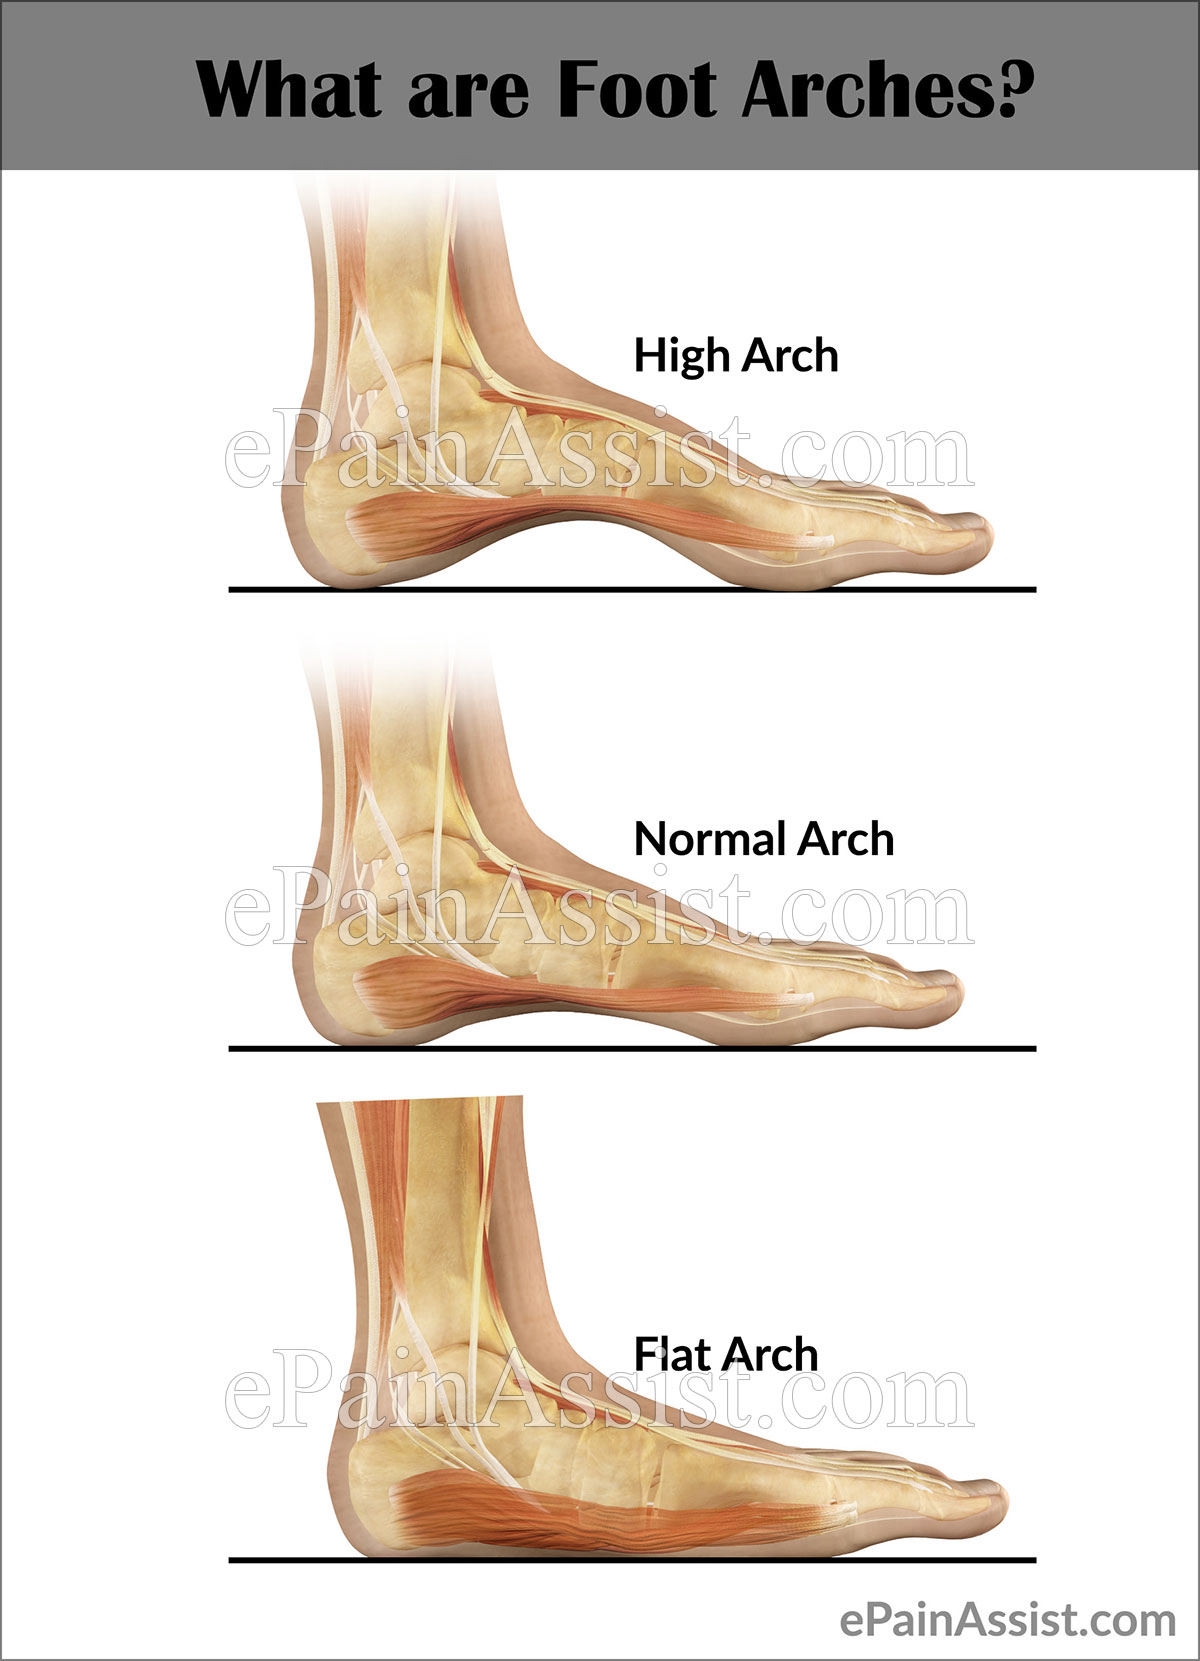 Arch Strain: What Causes Pain in the Arch of the Foot?